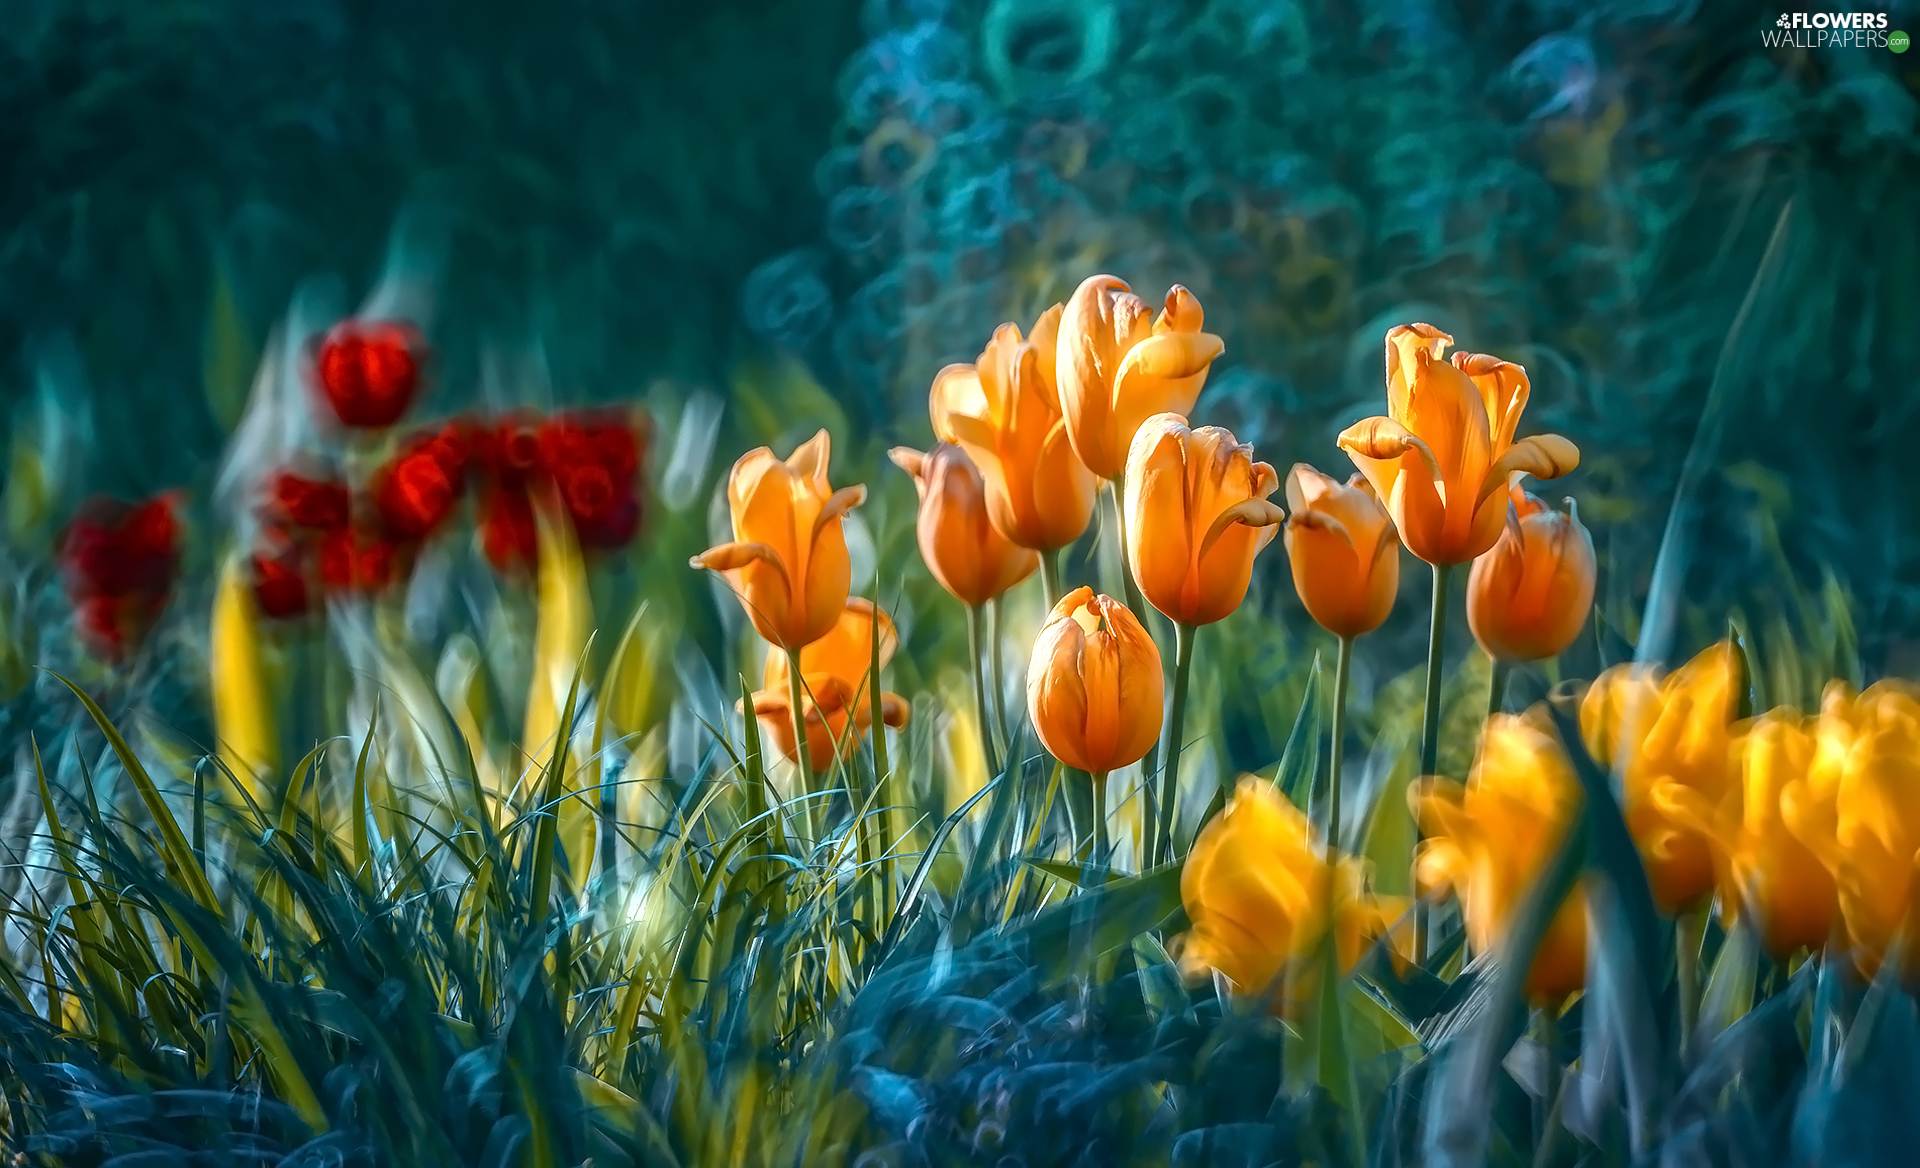 Flowers, Tulips, blur, color